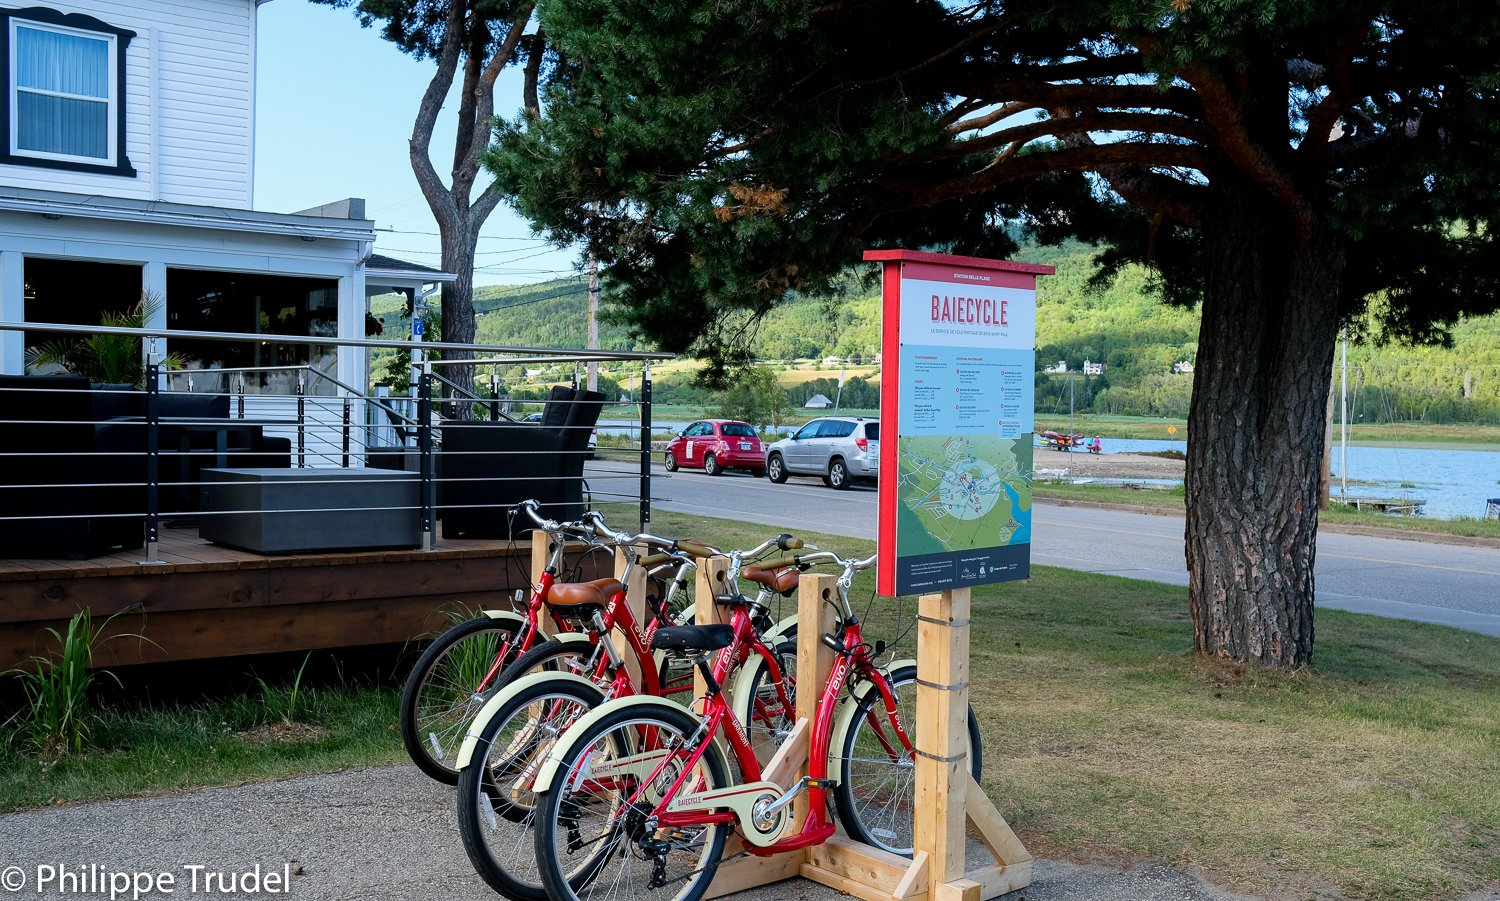 Station Belle Plage, Vélo-partage Baiecycle